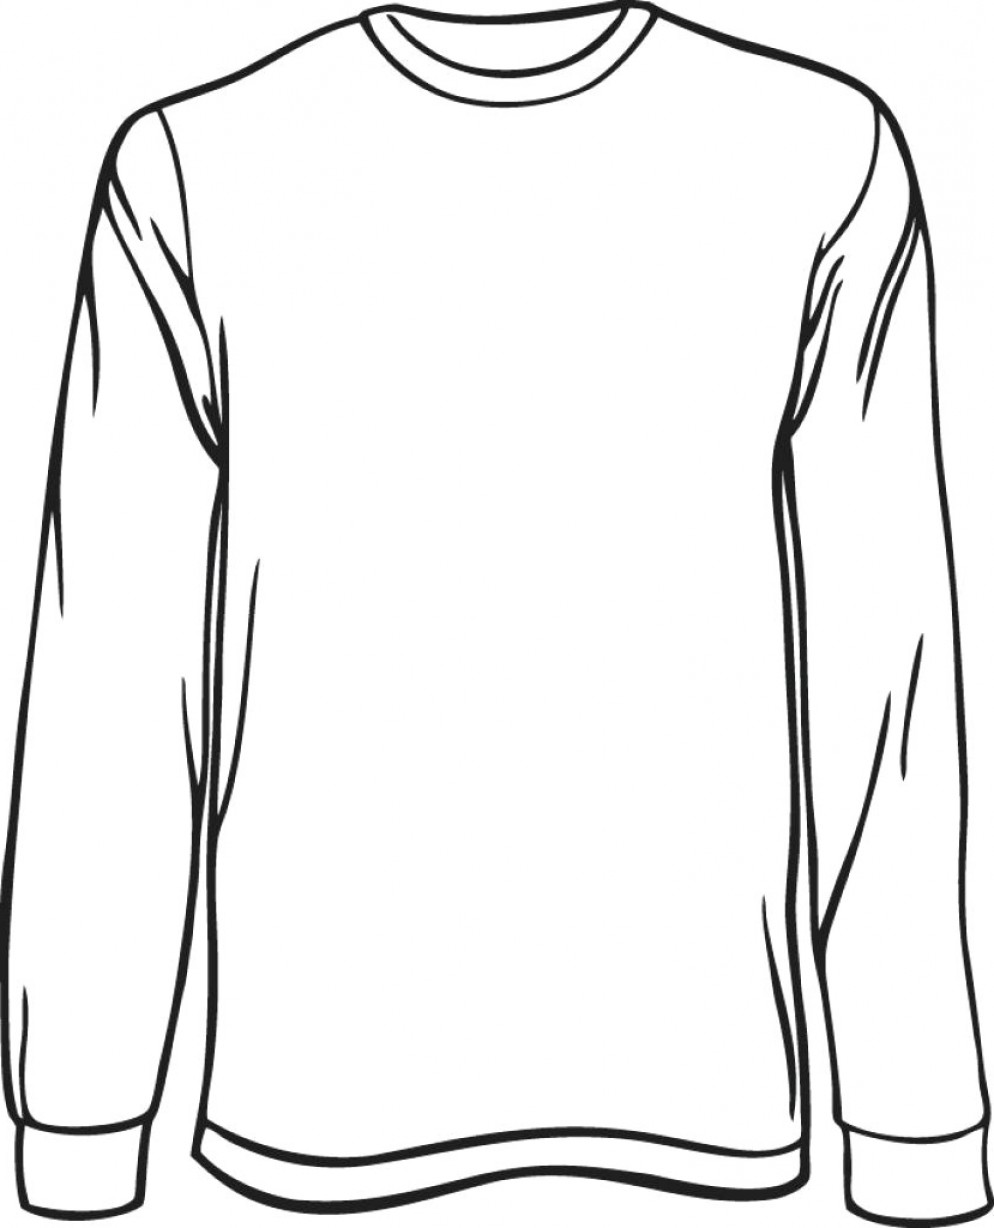 Long Sleeve Jersey Vector Template: Long Sleeve Template Interest Blank Long Sleeved T Shirt Template Vector